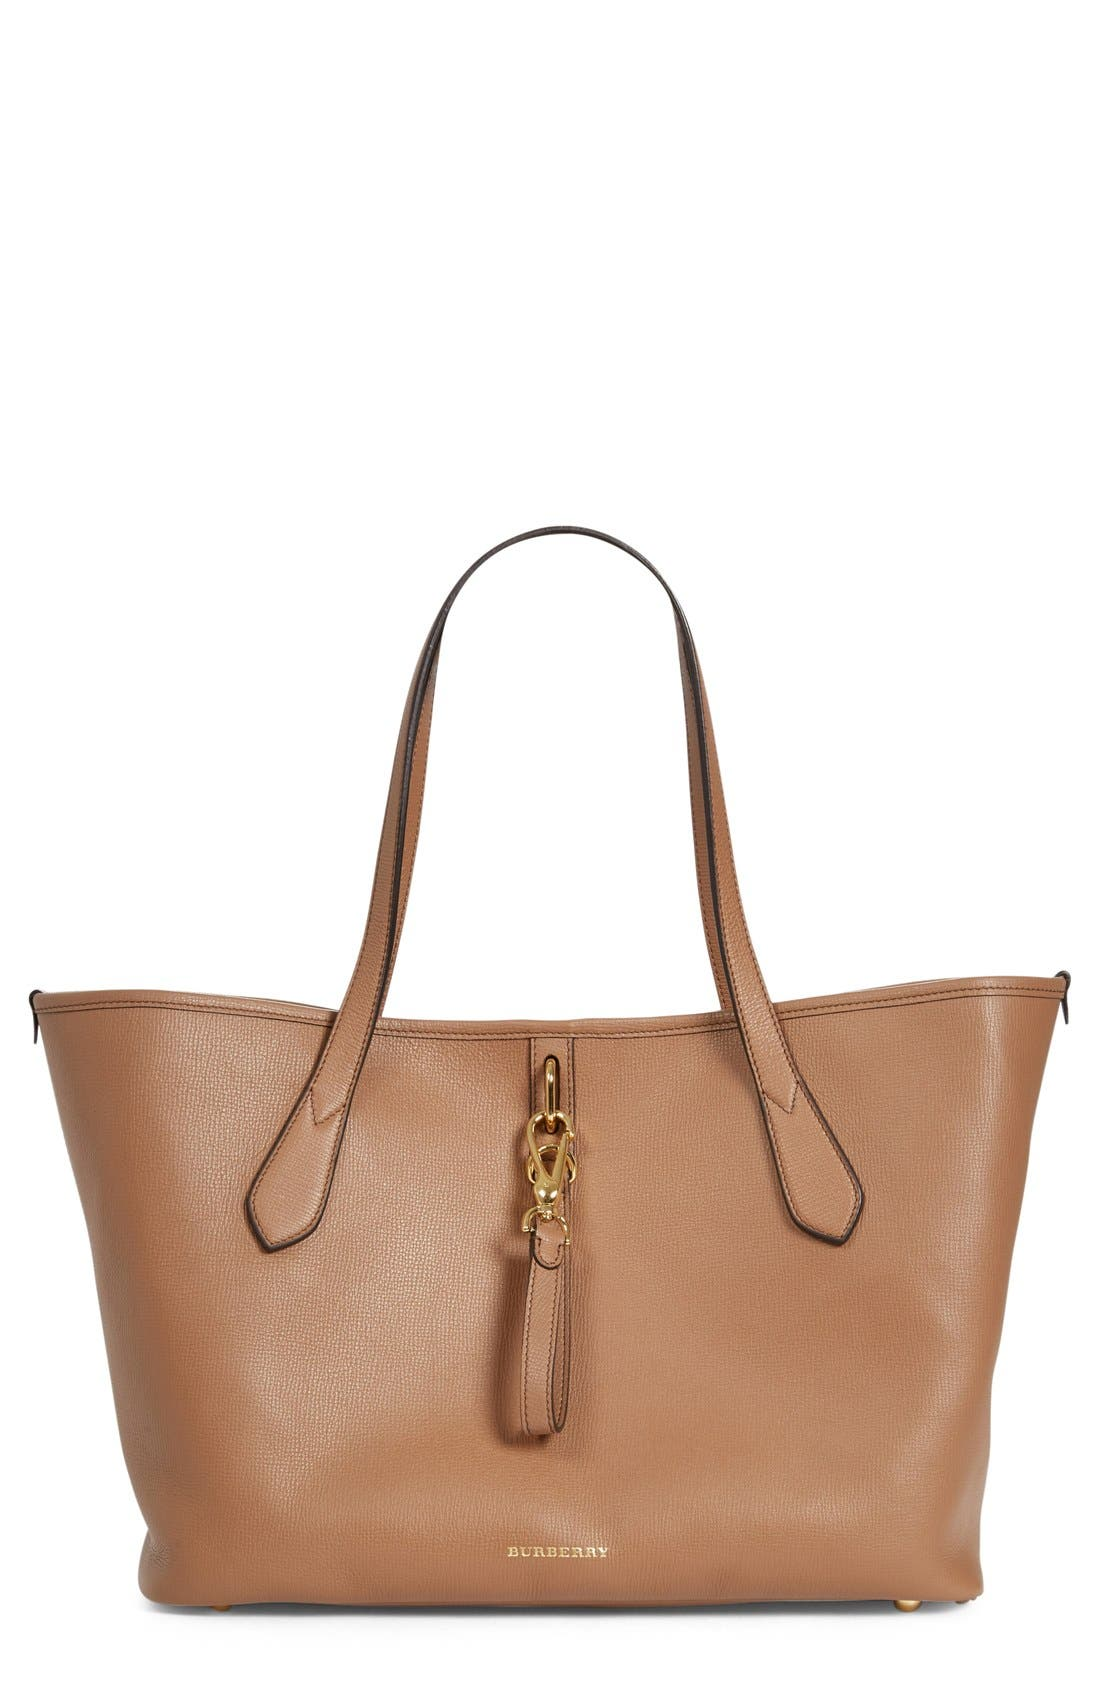 Burberry Tote Handbags